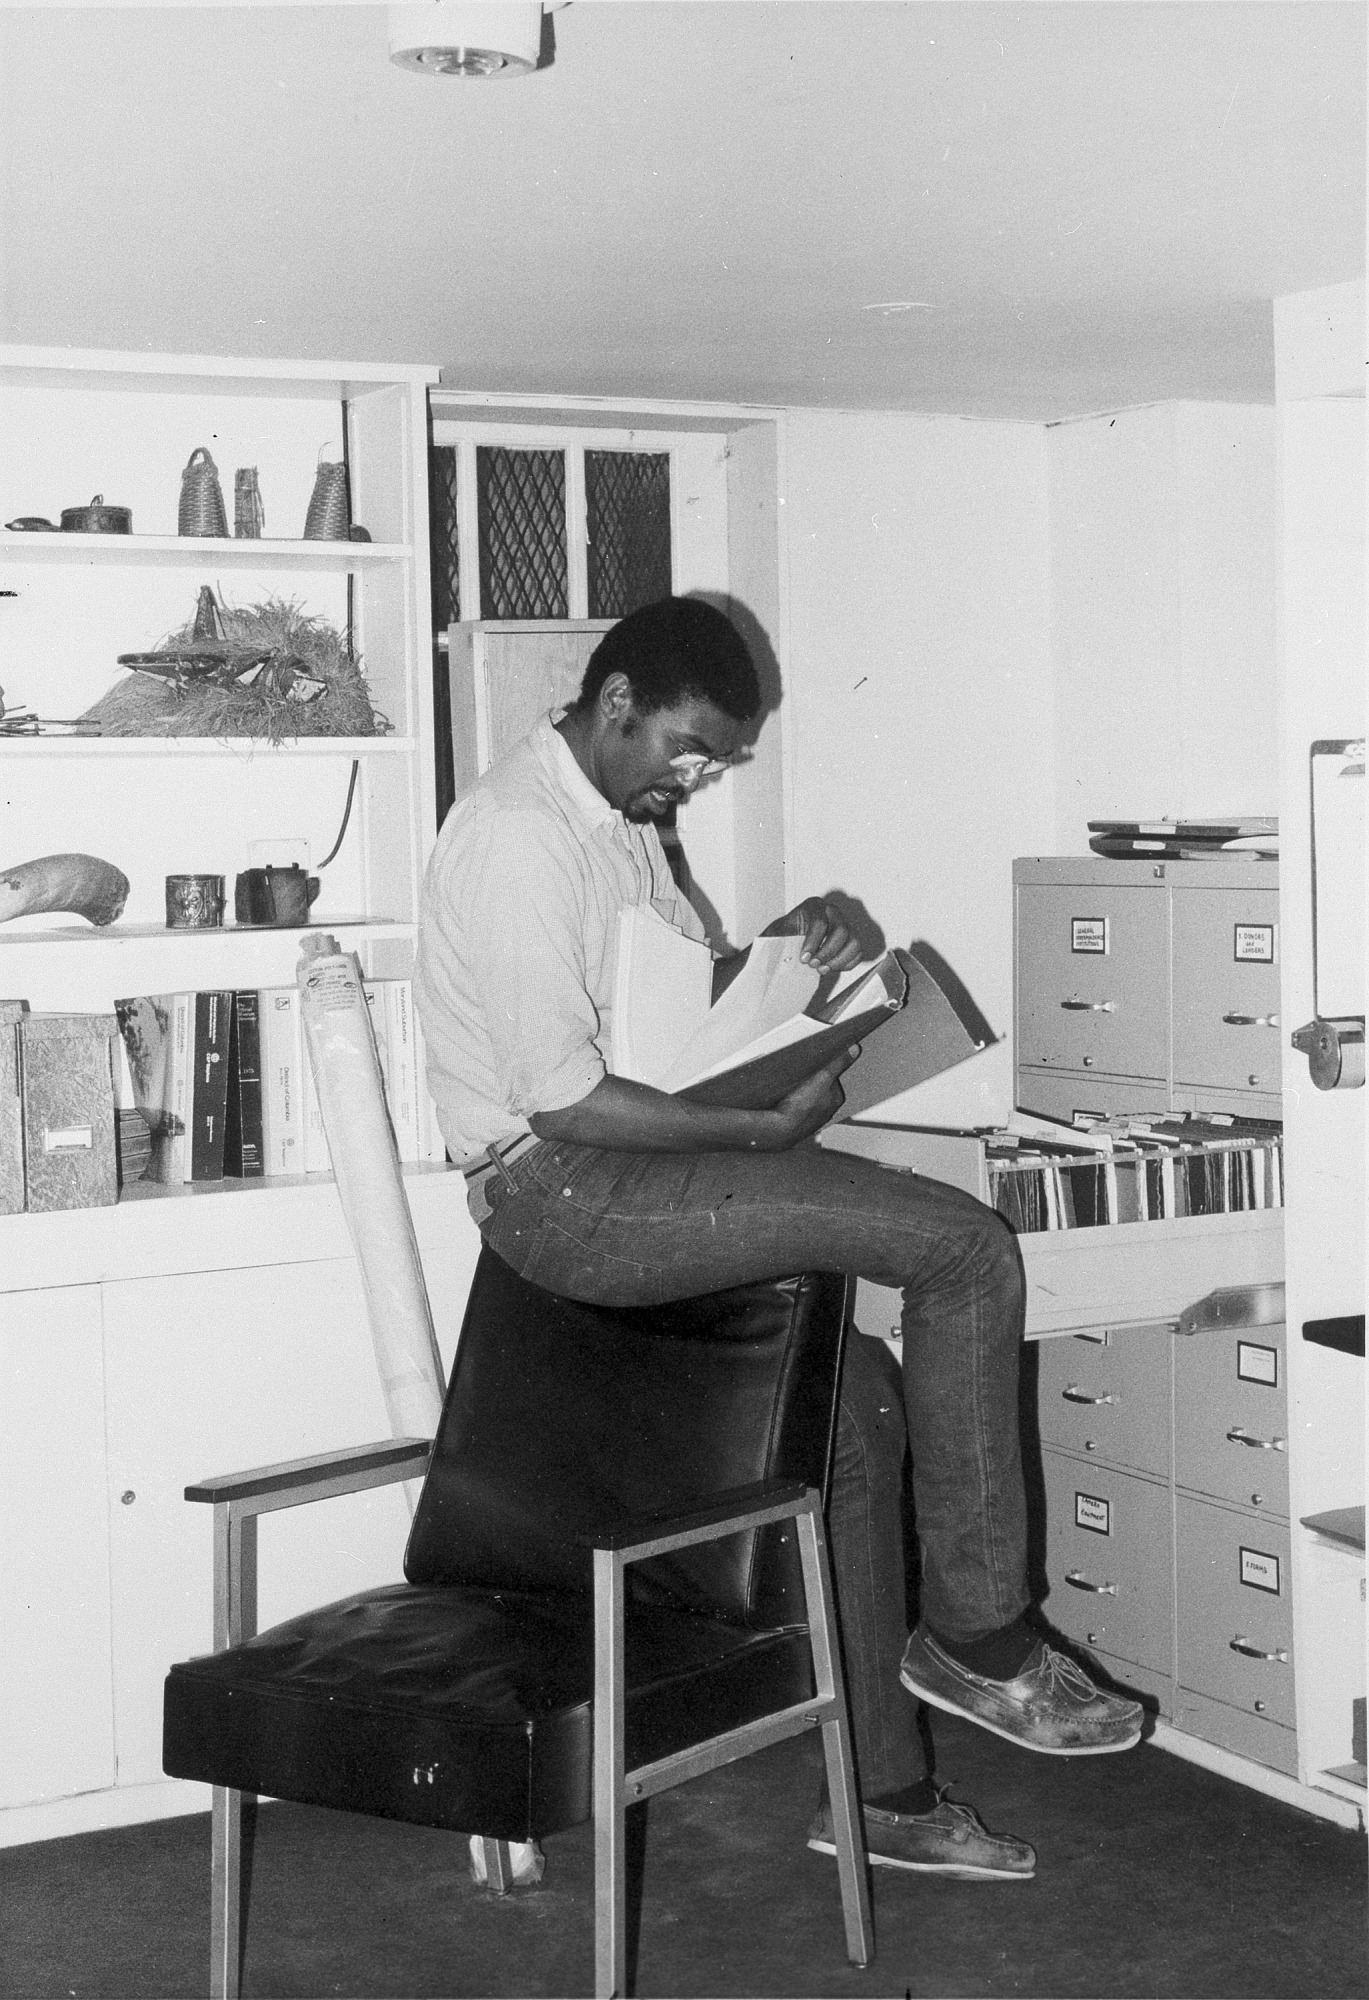 Michael A. Barclay-Watson, by Unknown, 1978, Smithsonian Archives - History Div, 96-1002.